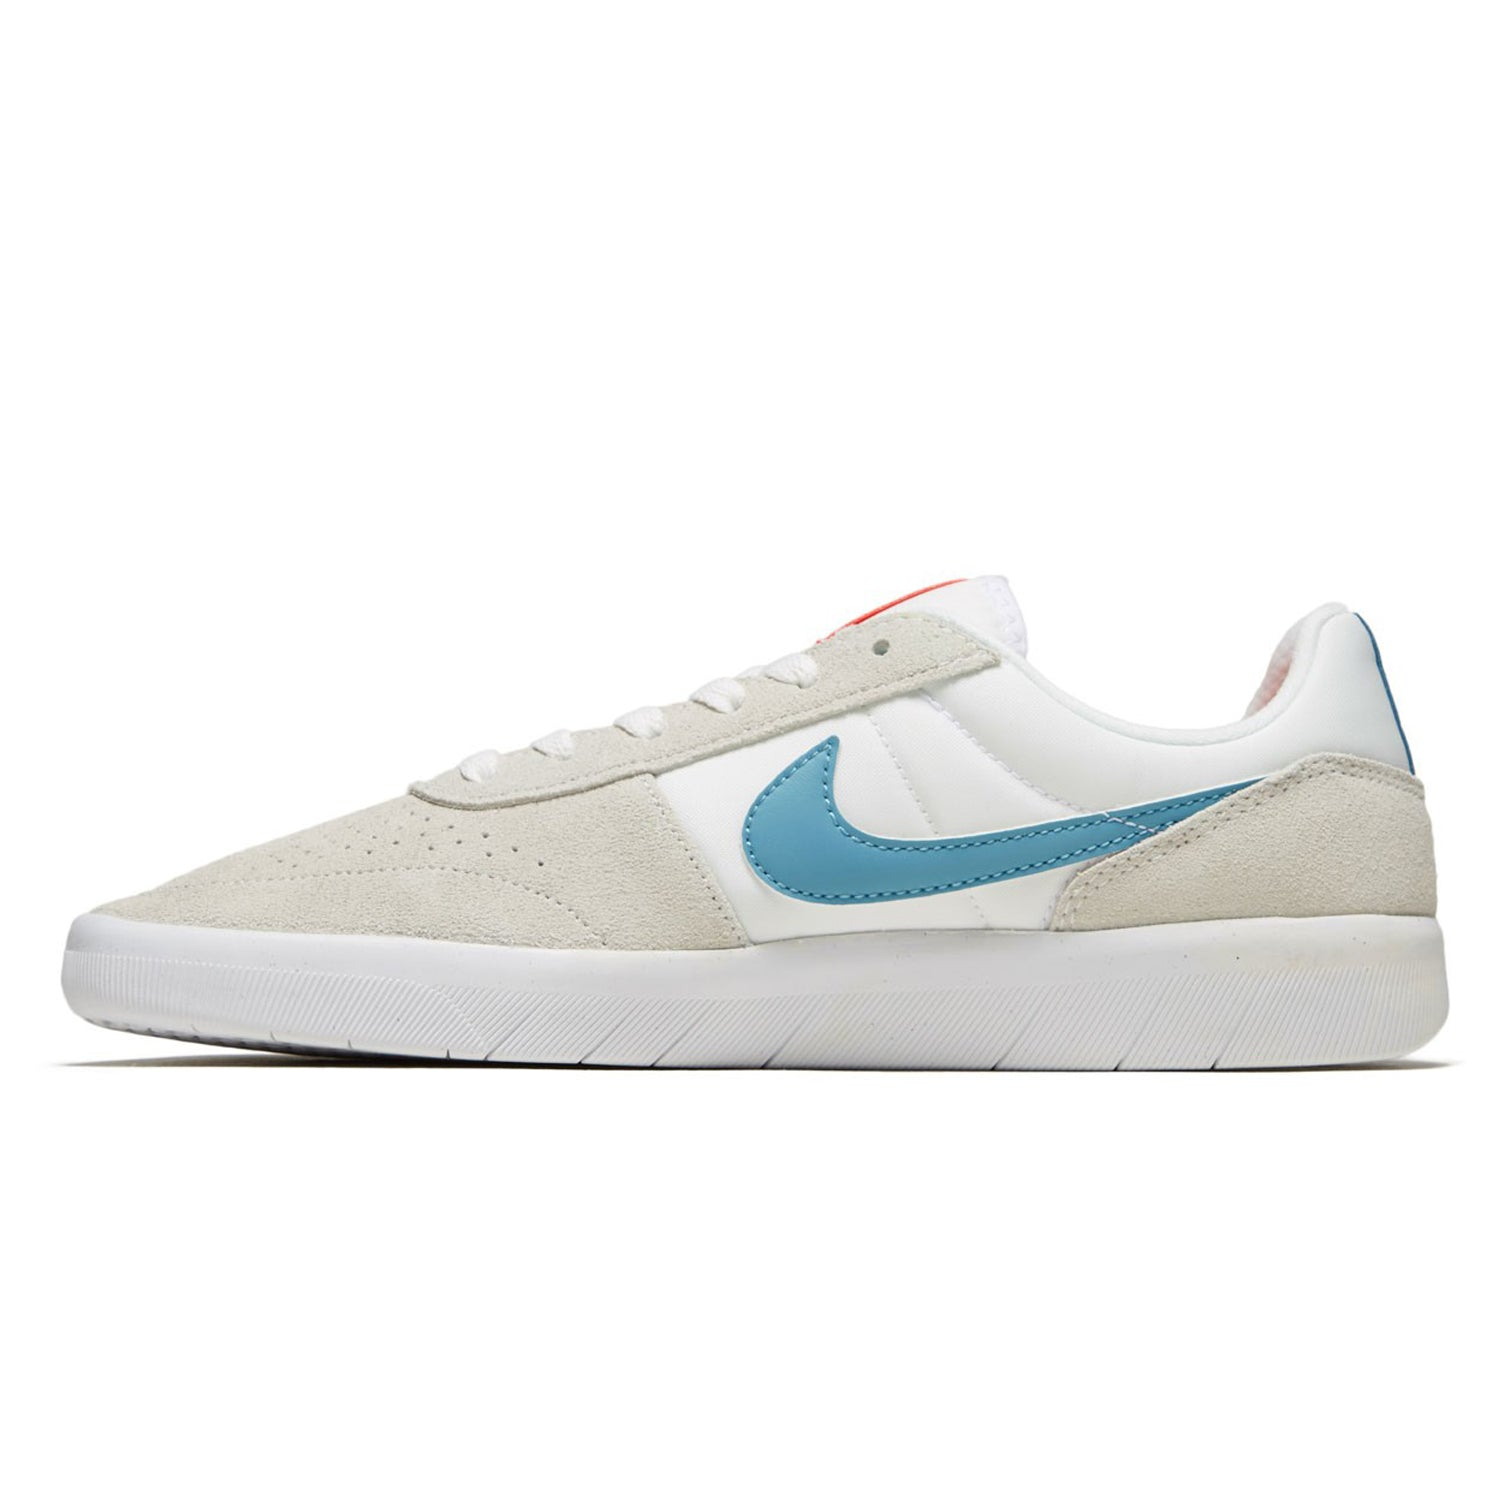 Nike SB Team Classic Summit White/Laser Crimson/Cerulean